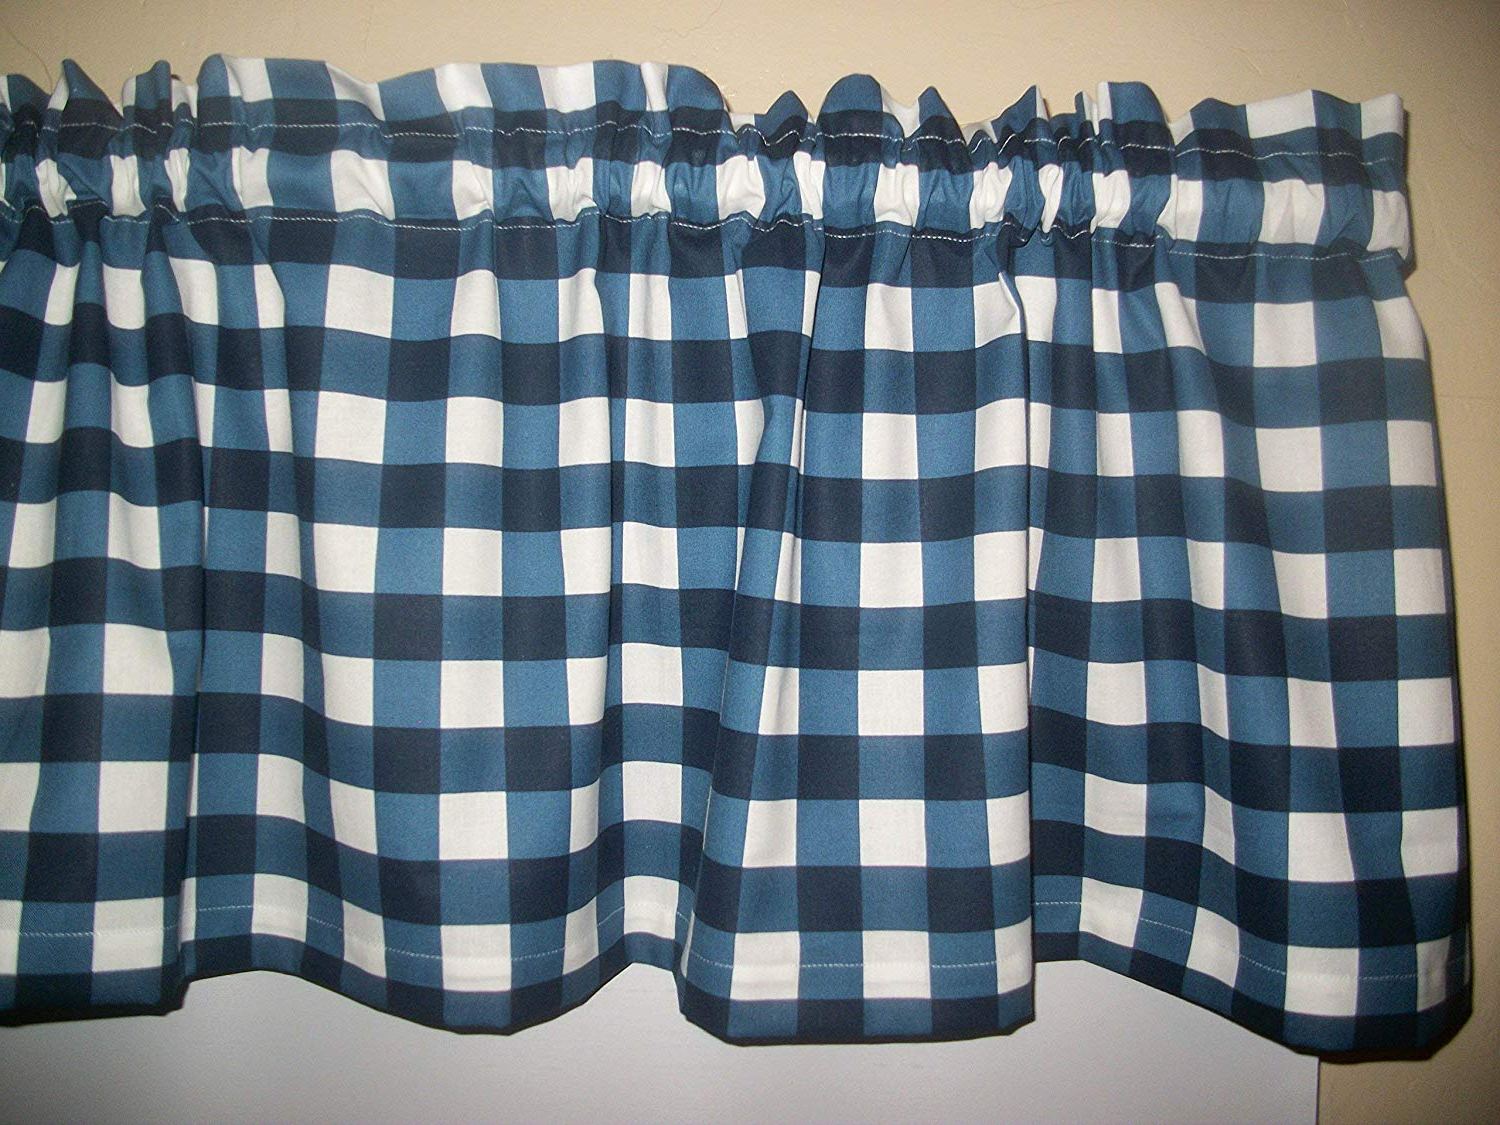 Best And Newest Amazon: Navy Blue White Plaid Buffalo Checked Checks Regarding Barnyard Buffalo Check Rooster Window Valances (View 18 of 20)